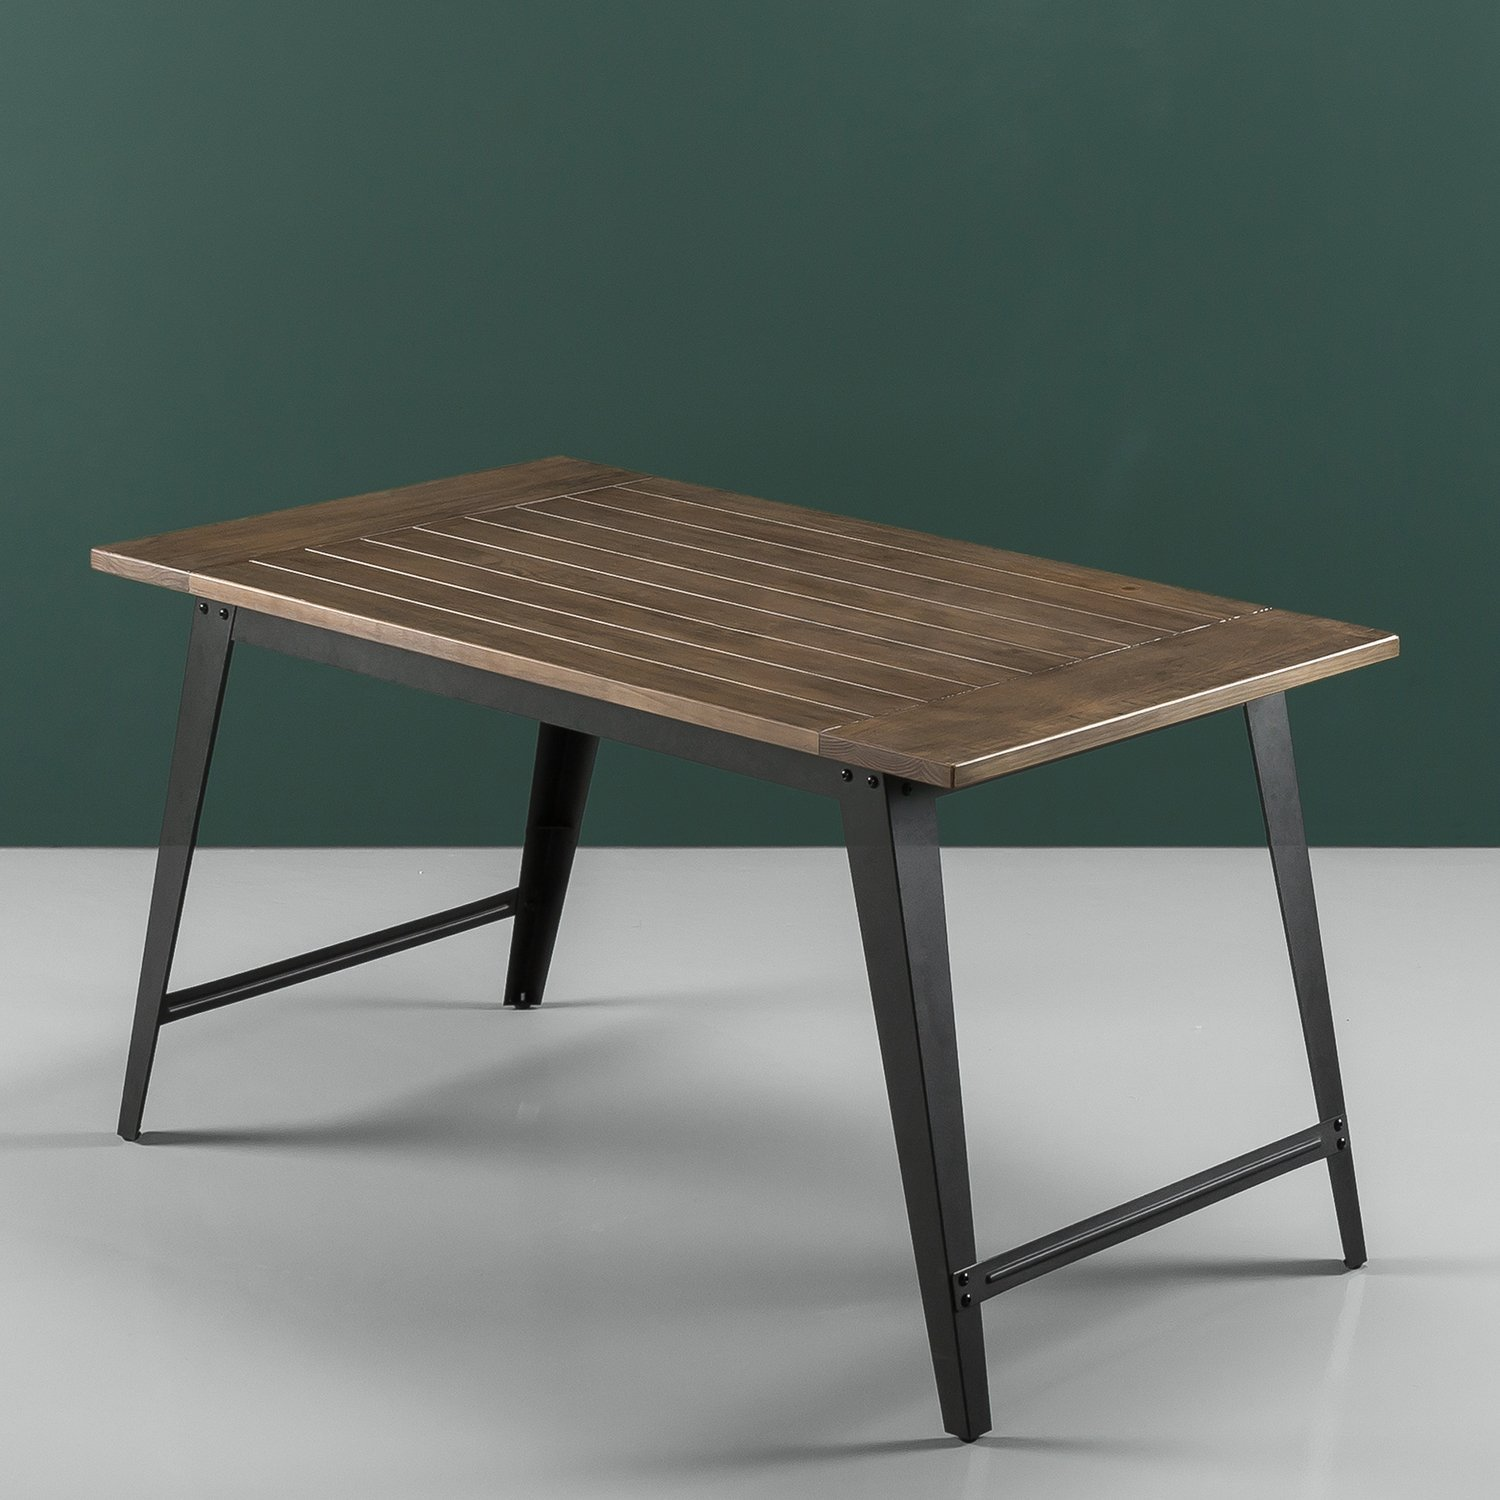 Zinus Donna Wood and Metal Dining Table by Zinus (Image #3)